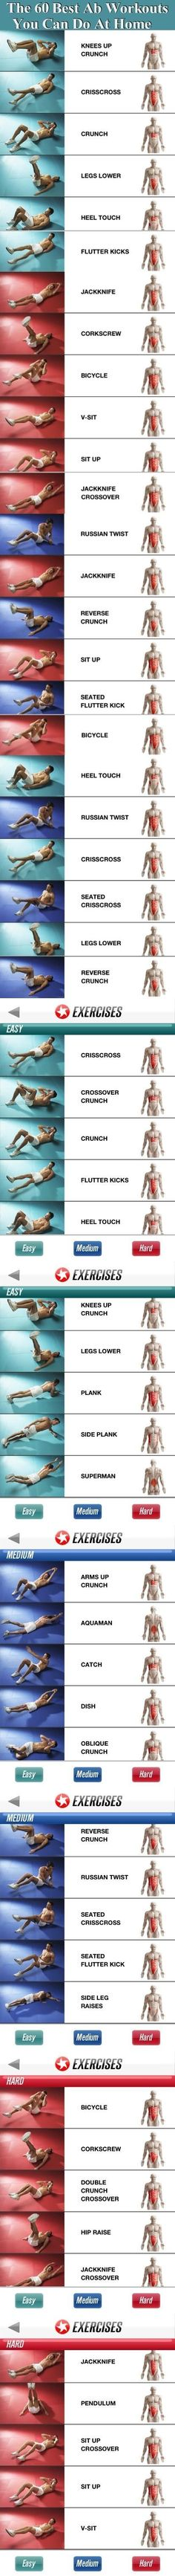 Post with 52 votes and 1735 views. Tagged with fitness, excercise, workout, exercises to do at home; Get fit by using these 60 best ab workouts at home without any equipment. Body Fitness, Health Fitness, Health Diet, Energy Fitness, Fitness For Men, Fitness Couples, Fitness Foods, Planet Fitness, Workout Bauch